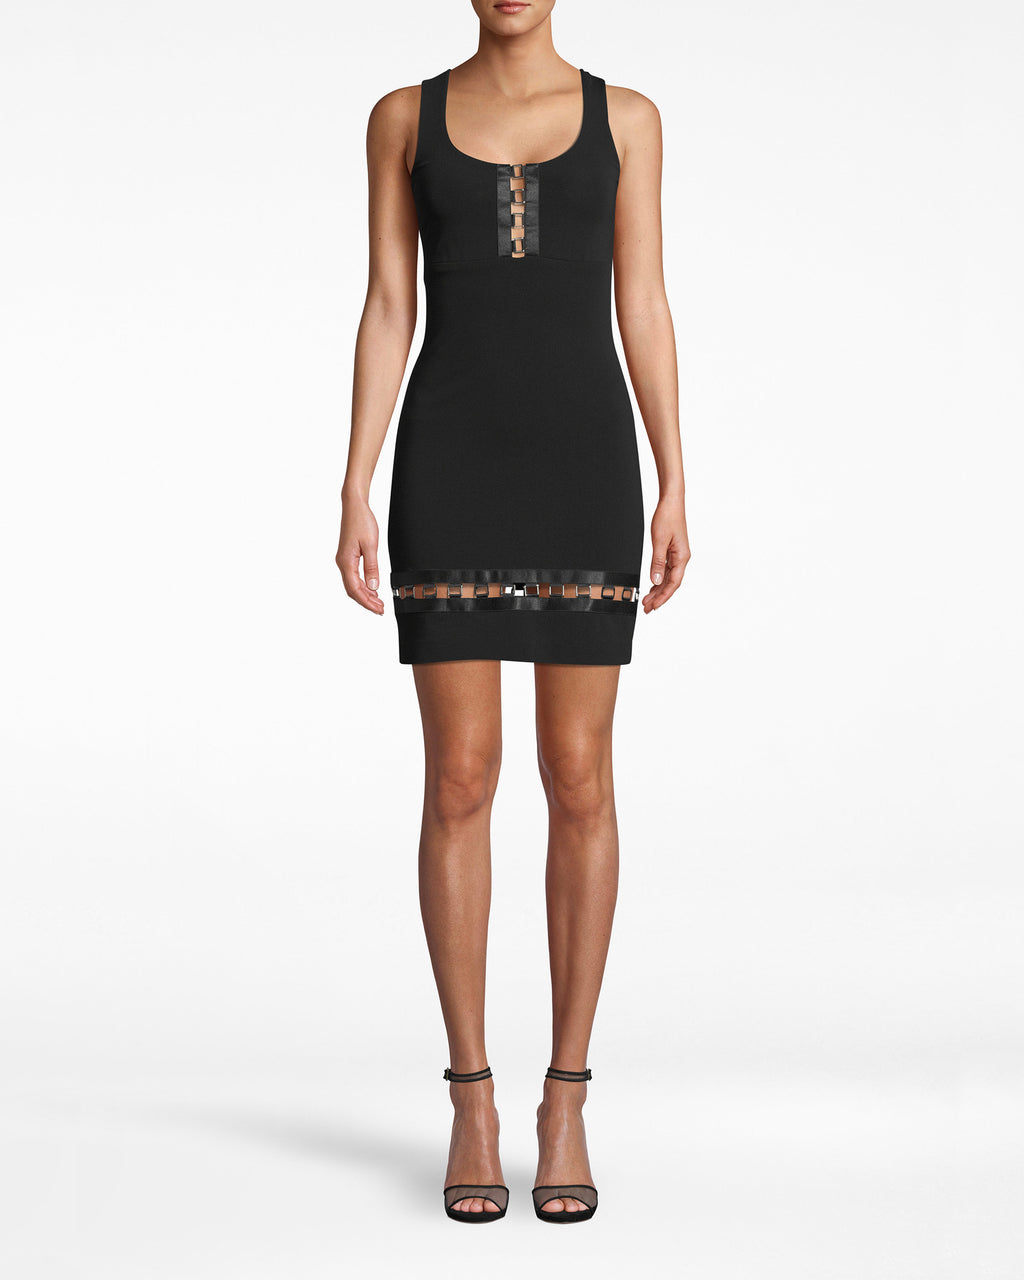 BO10173 - HEAVY JERSEY SQUARE RING SCOOP NECK DRESS - dresses - short - Ring round the jersey dress. This square neck style has daring ring detailing in the center bodice and along the hem. The v-neck back leads down into an exposed zipper. LINED.